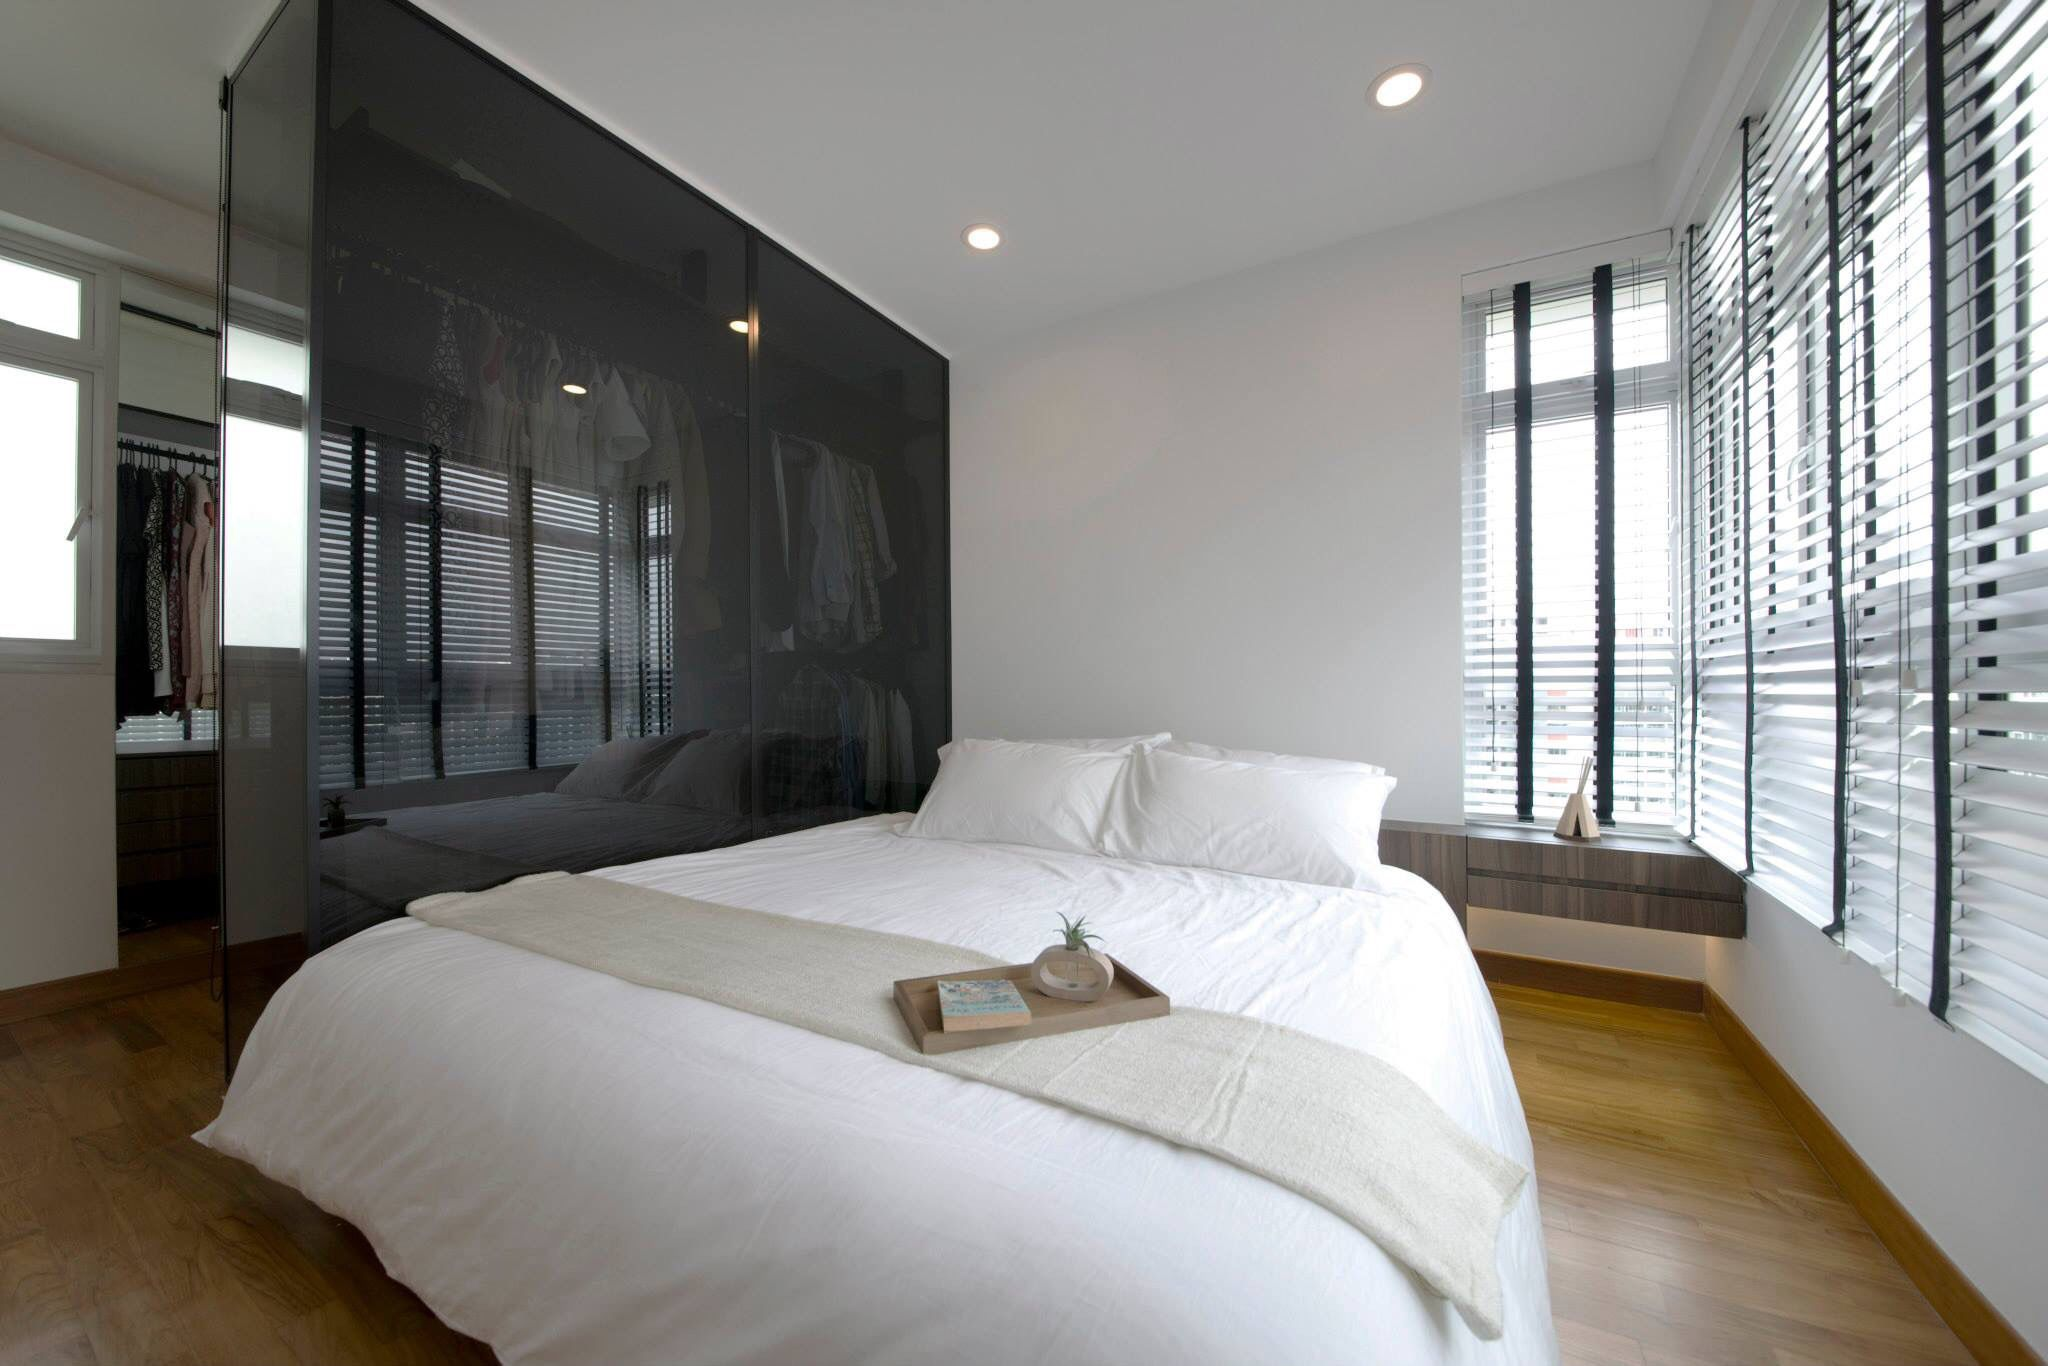 Hdb Bedroom Wardrobe Design Bedroom Modern Bedroom Design Bedroom Design